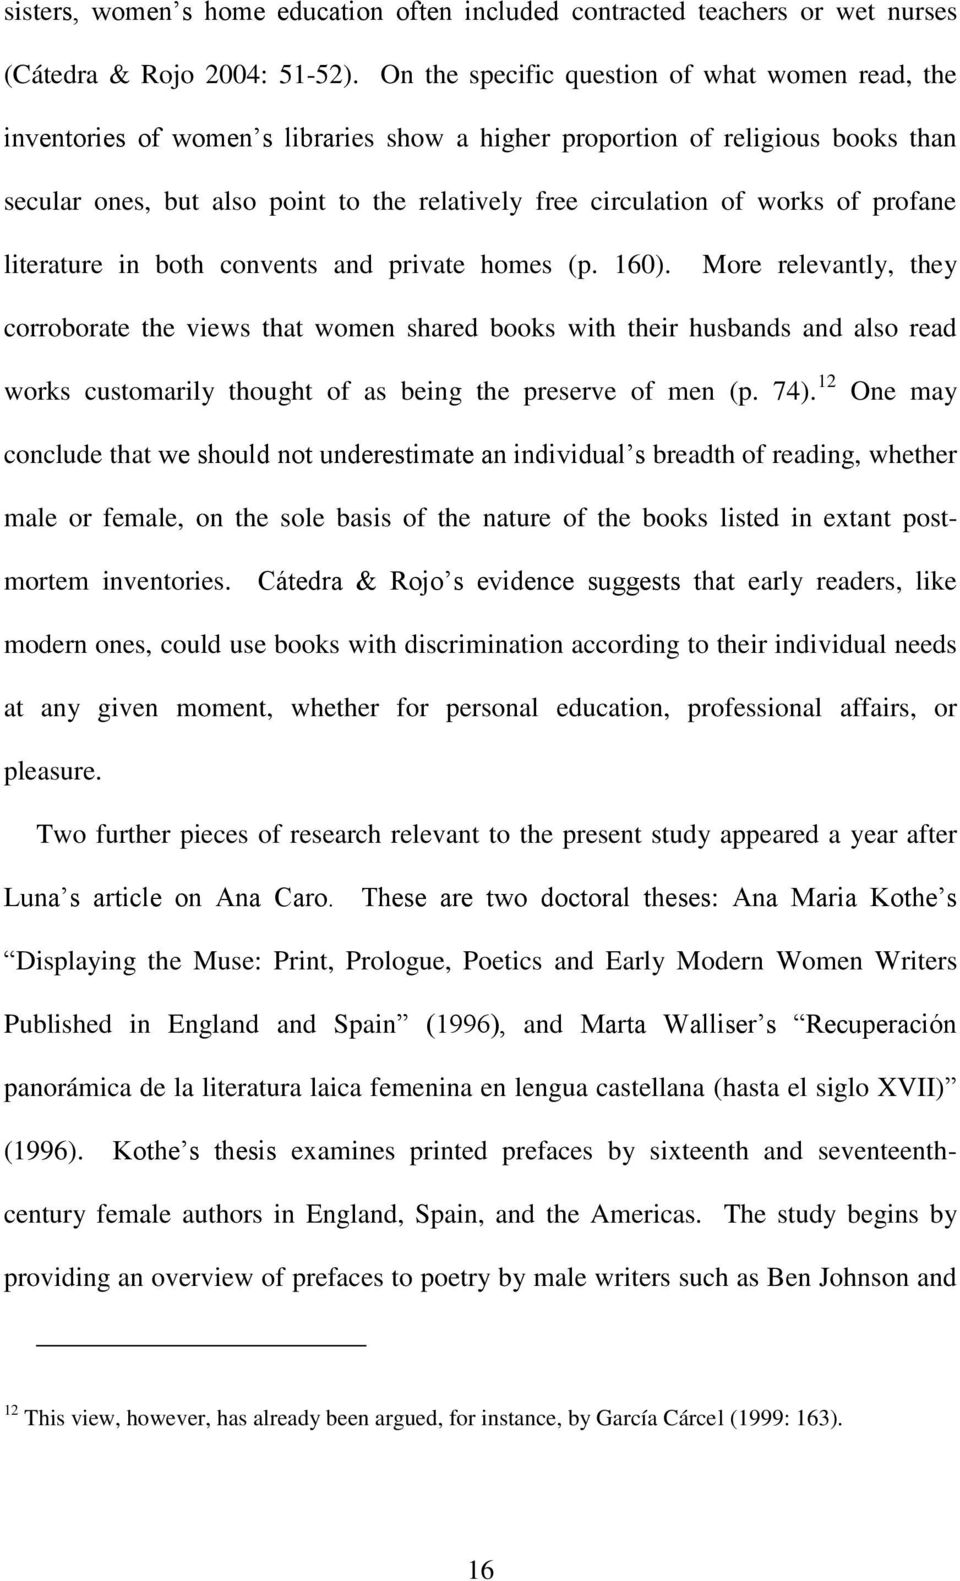 works of profane literature in both convents and private homes (p. 160).